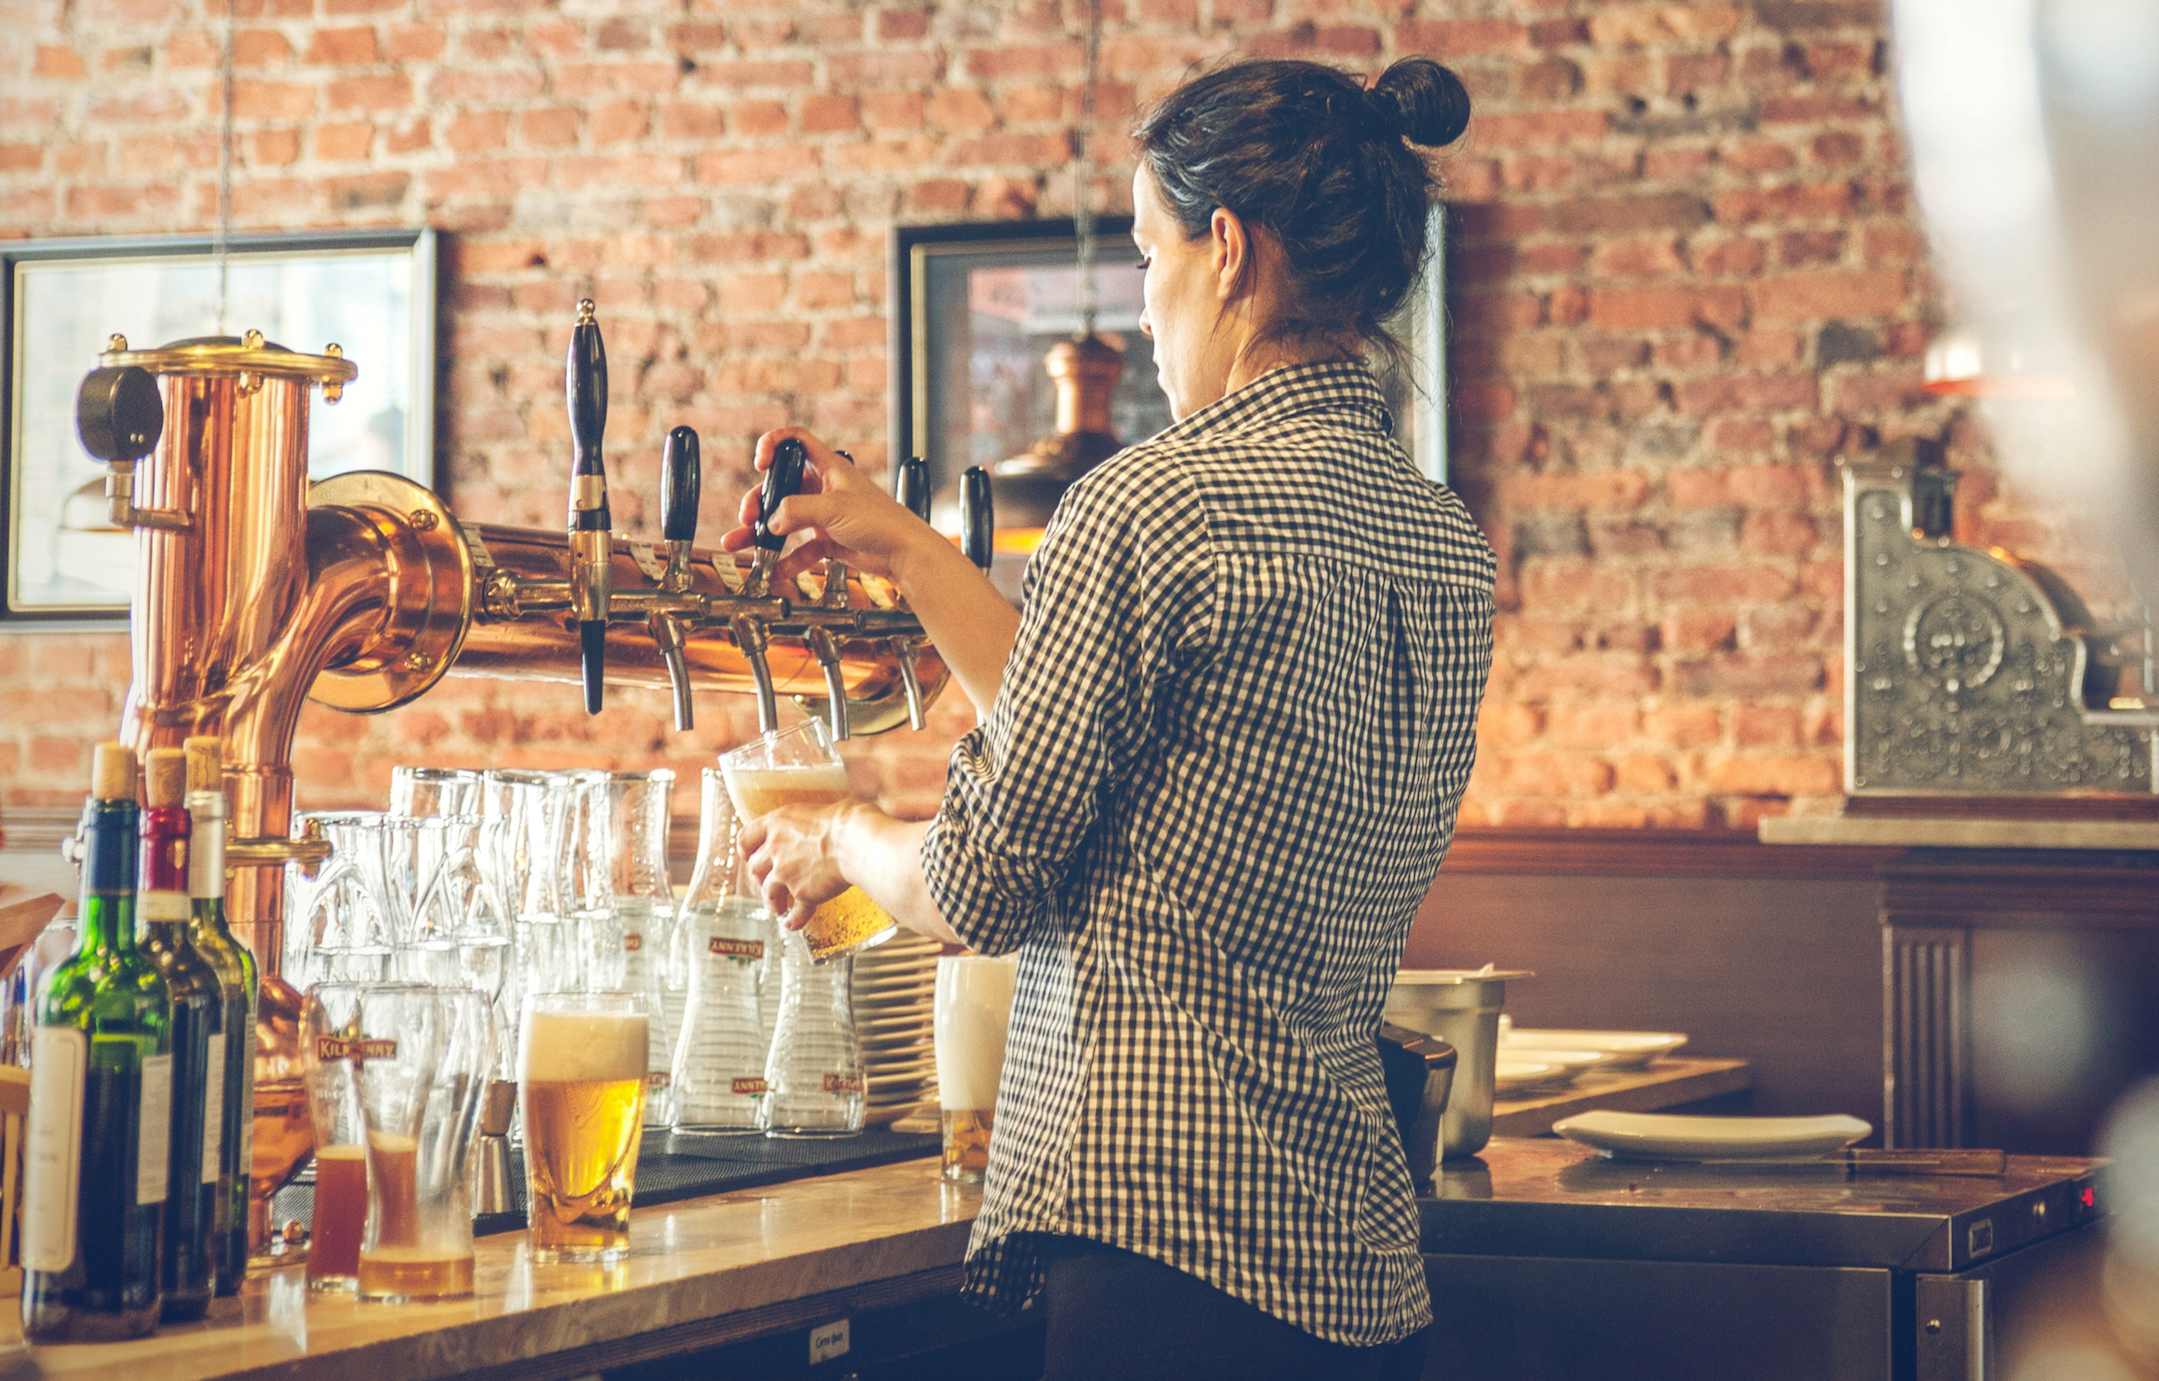 'Best bartender in the world': I was fired for being too old